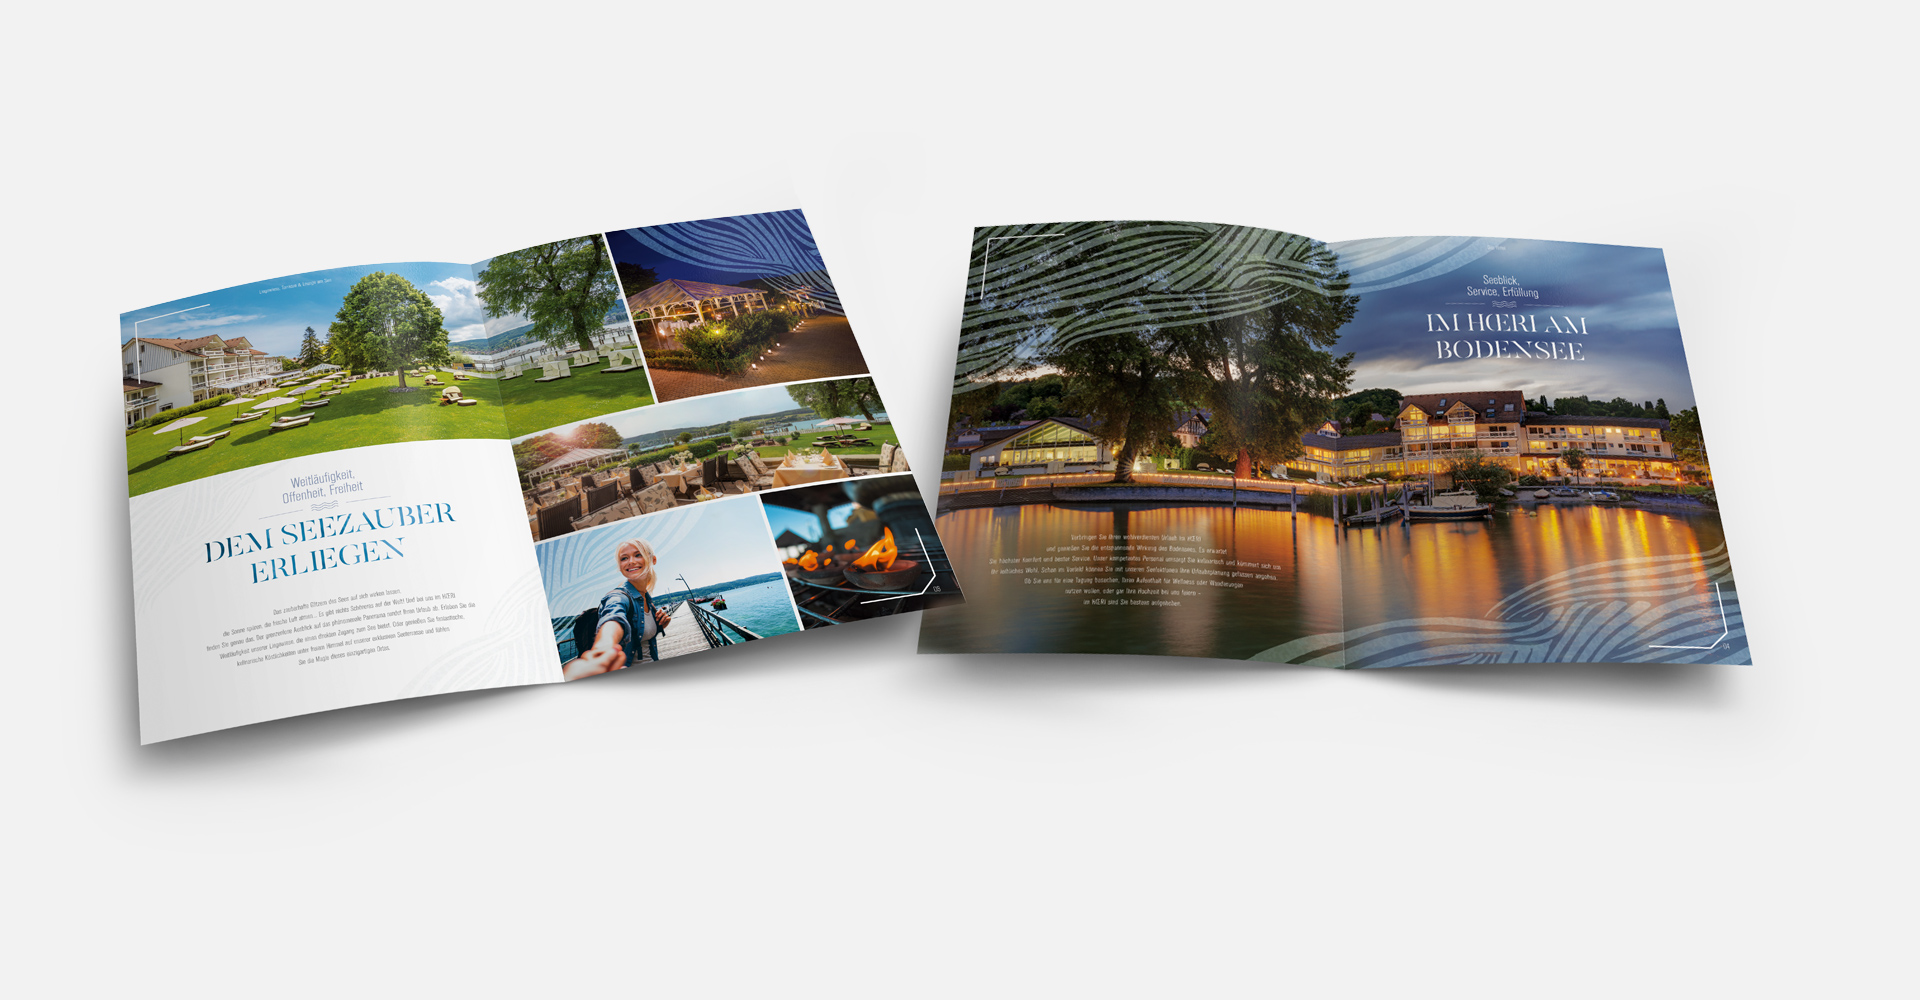 OPUS Marketing / Projekte / Hotel Hoeri am Bodensee / Print / Seensationen / Innenseiten